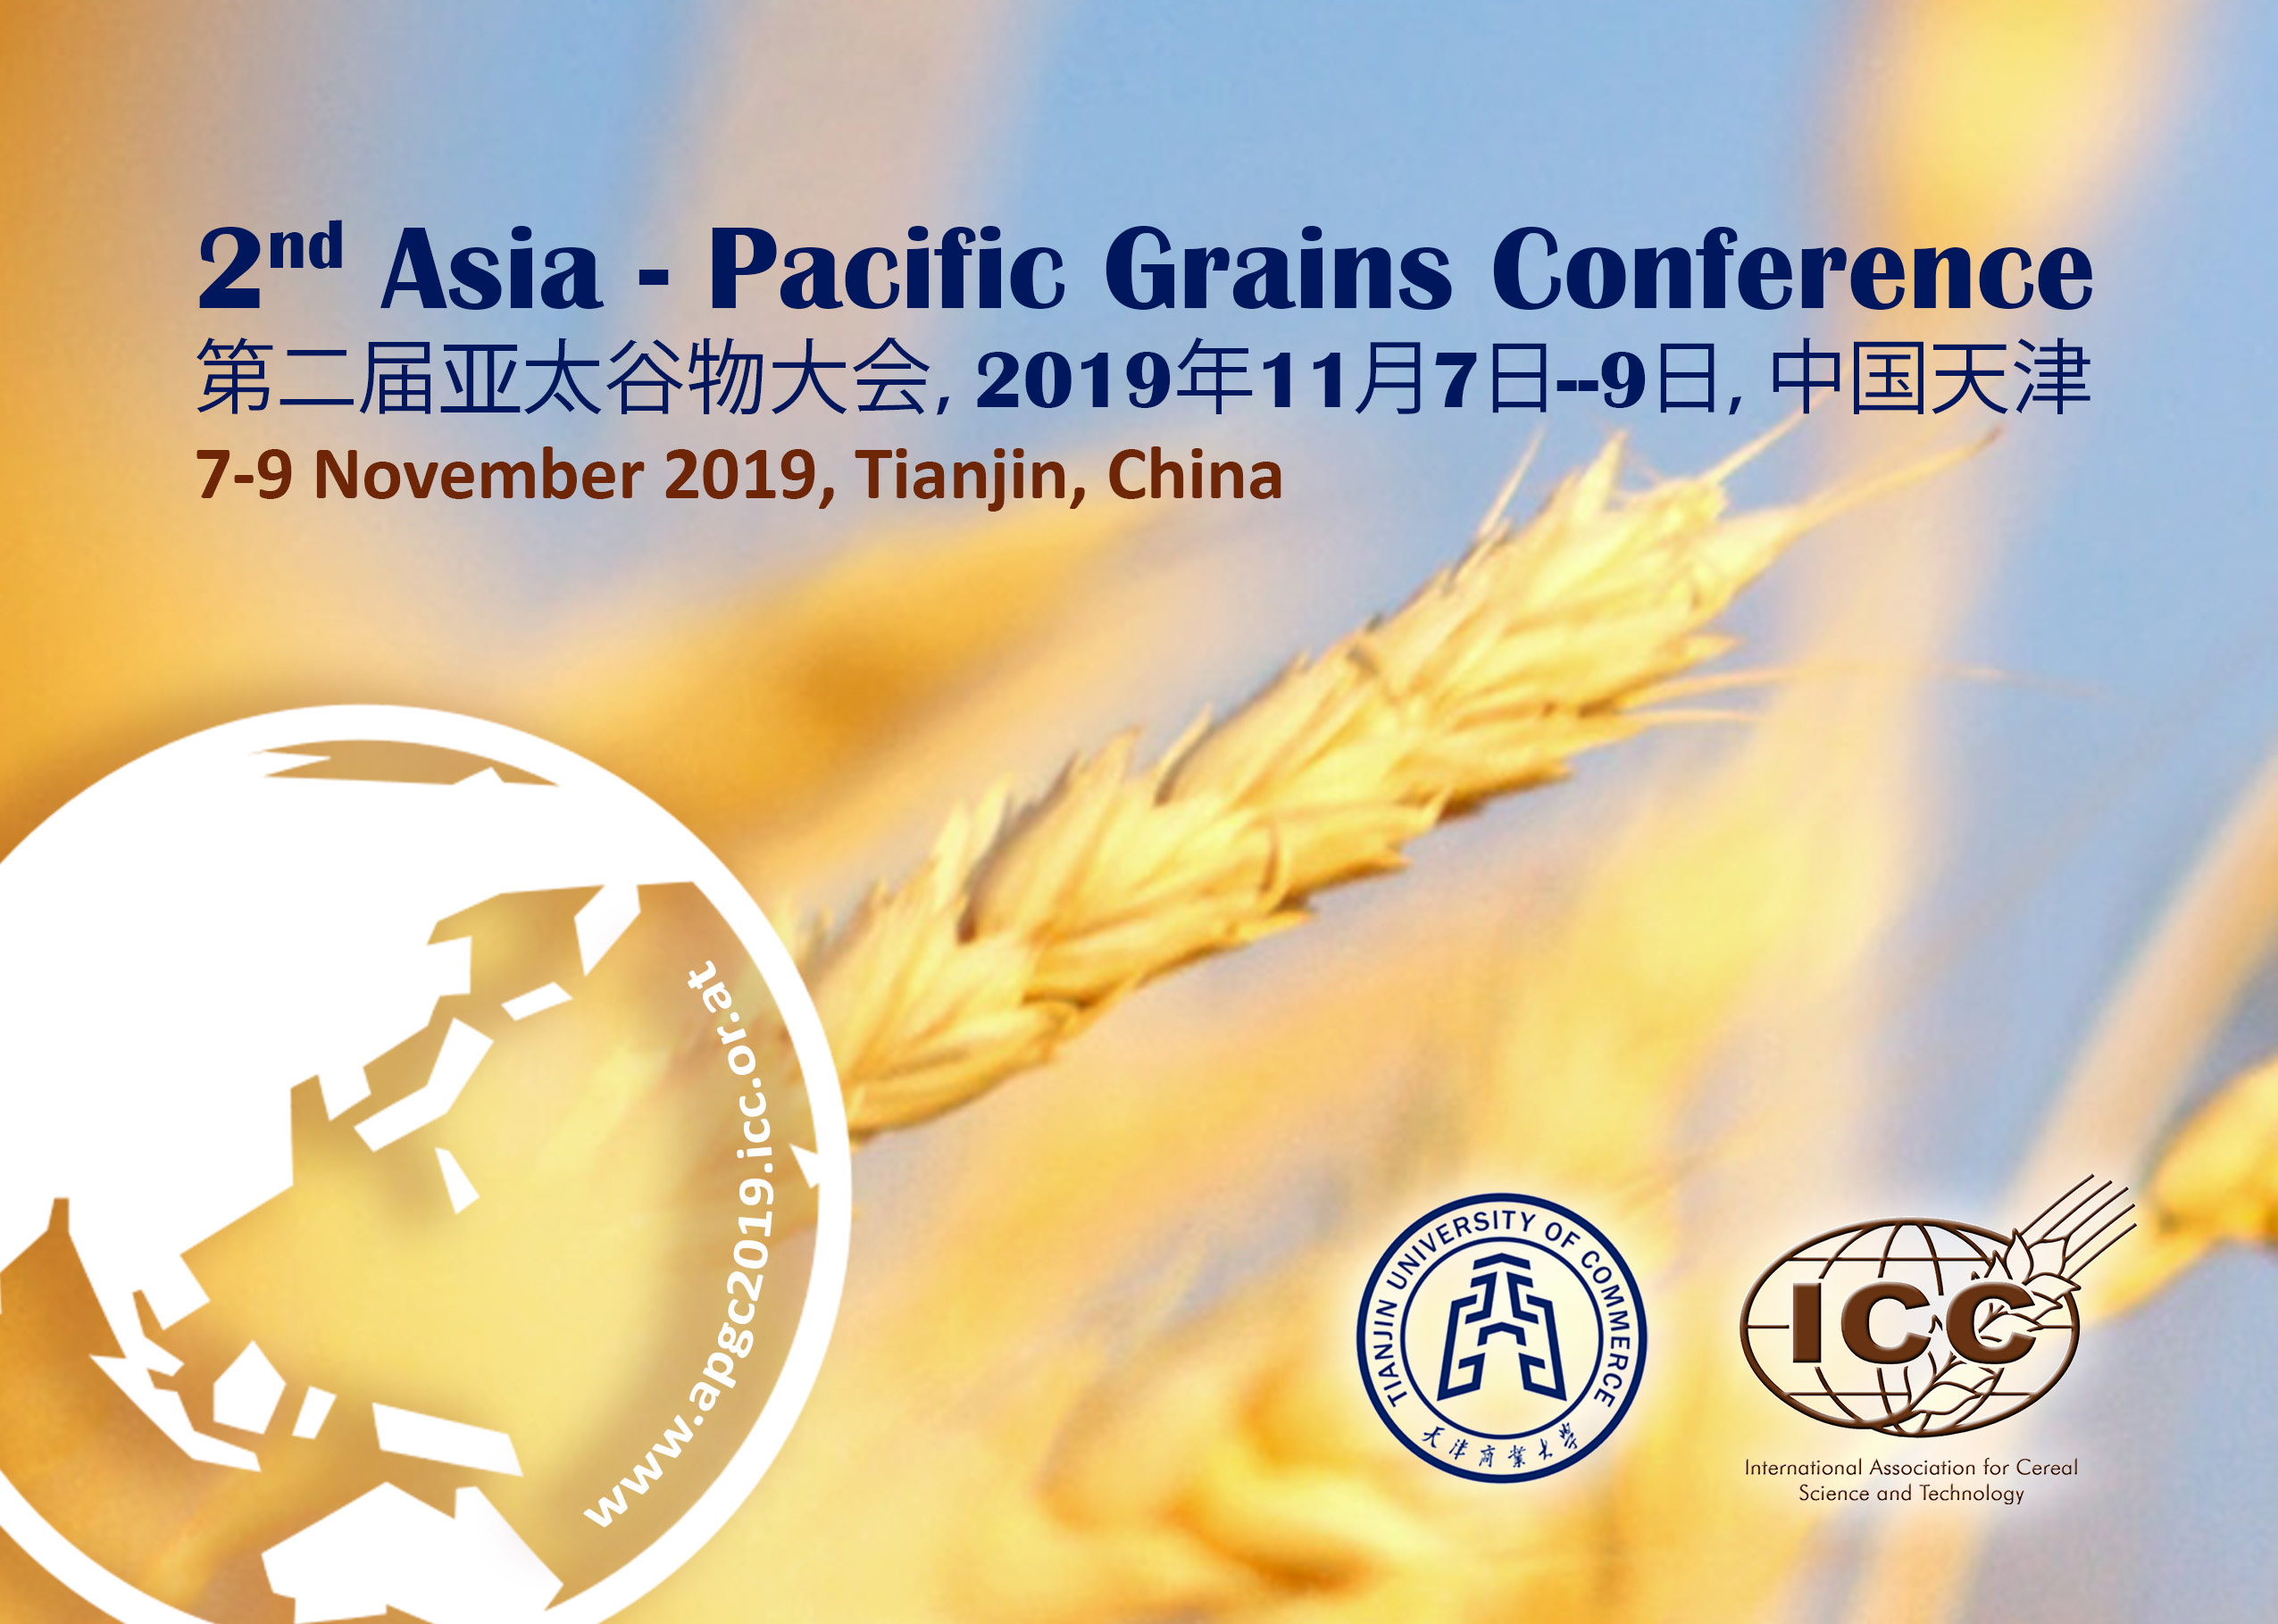 2nd Asia-Pacific Grains Conference - Save the date!